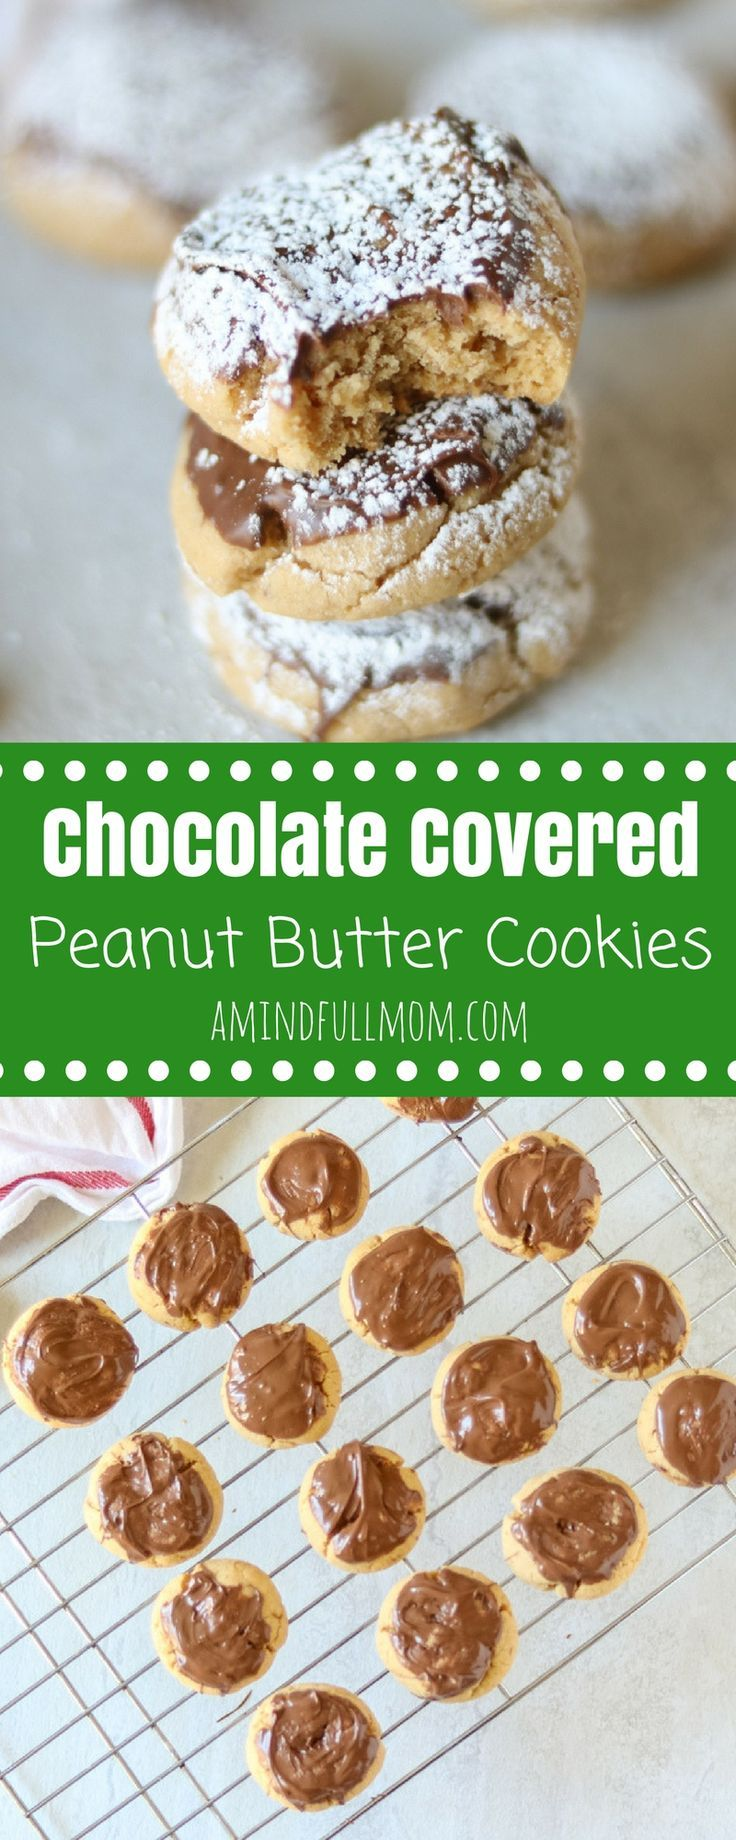 Chocolate Covered Peanut Butter Cookies AKA Muddy Buddy Cookies: A tender peanut butter cookie is dipped in milk chocolate and then dusted with powdered sugar.#cookies #ChristmasCookies #baking #peanutbutter #chocolate #chocolatepeanutbutter #holidaybaking via @amindfullmom